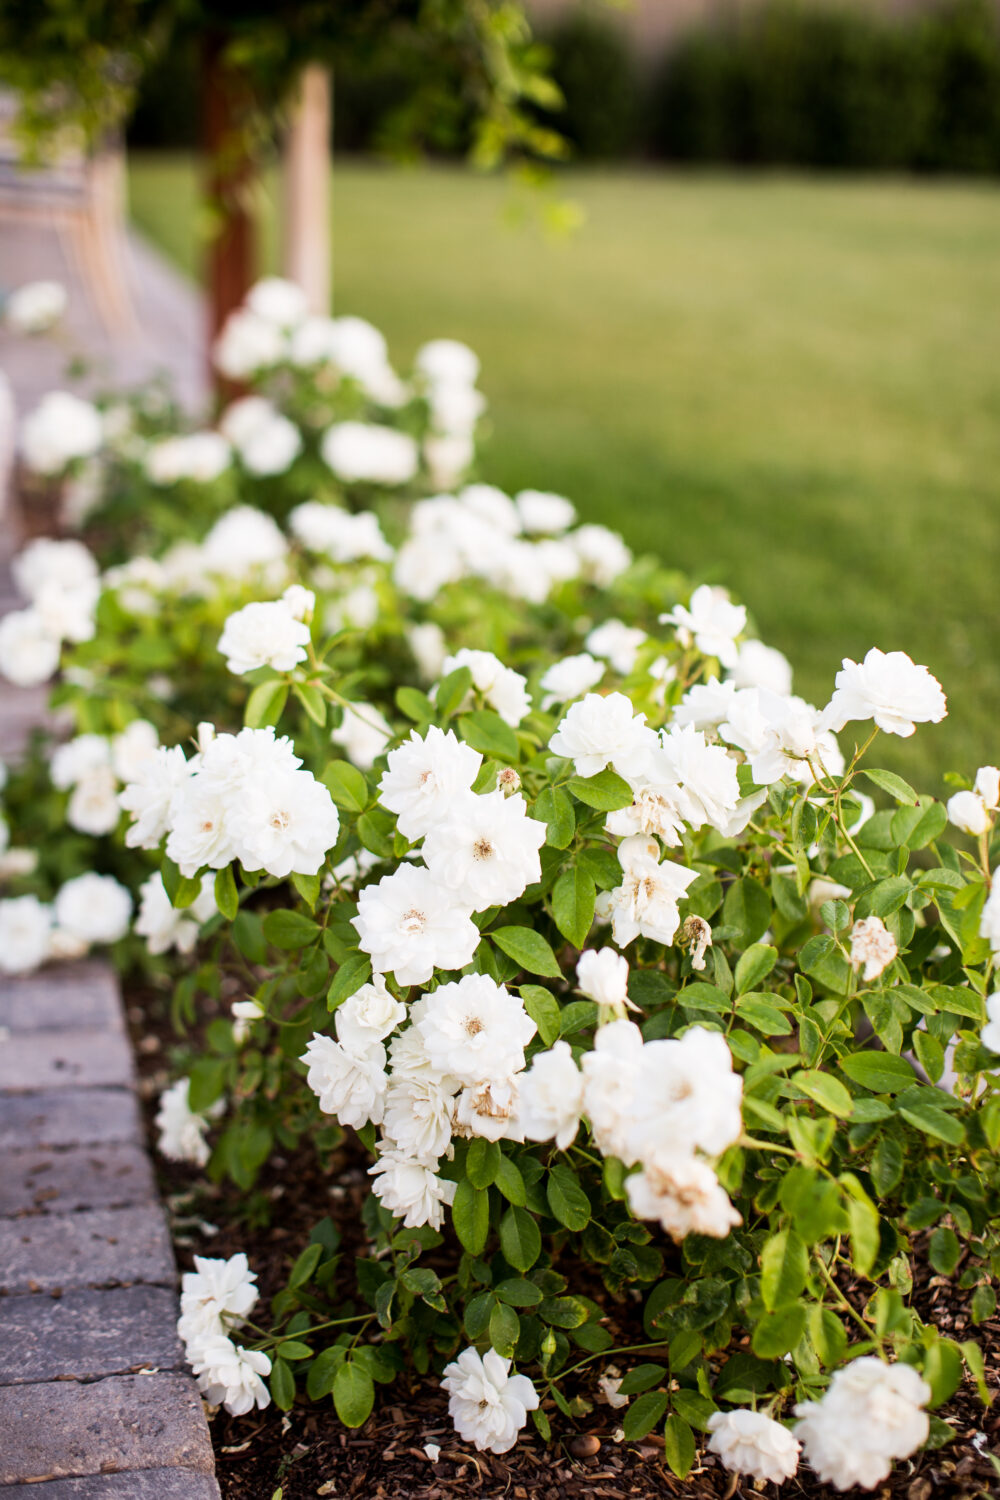 Favorite Shrubs and Bushes for a West Facing Backyard